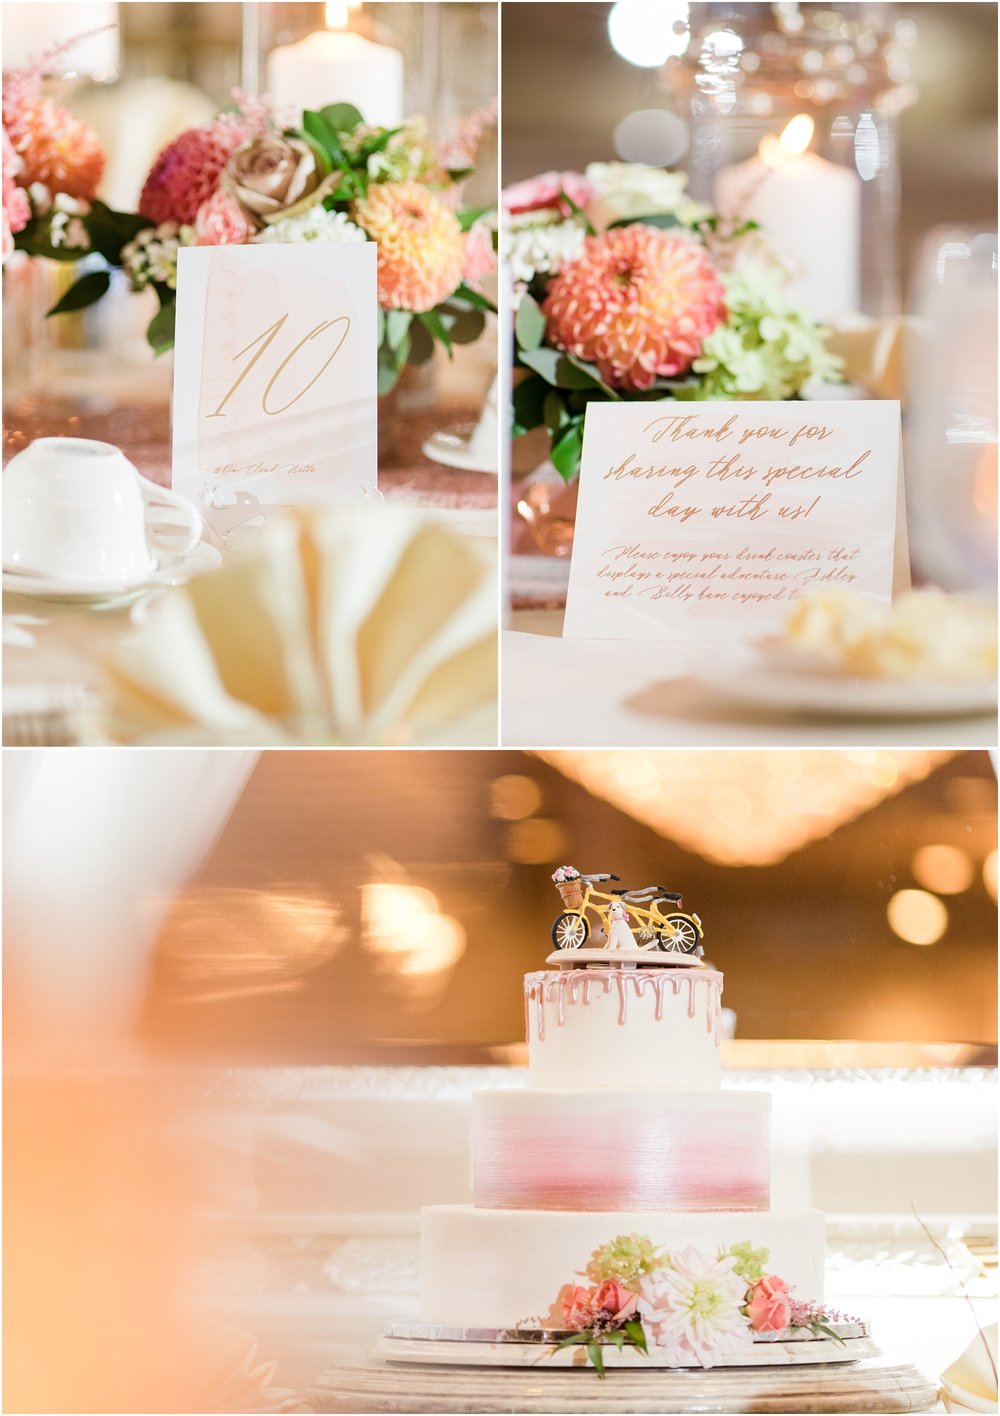 Table numbers, wedding favors, and wedding cake from Wildflowers with Tami at The Breakers in Spring Lake, NJ.